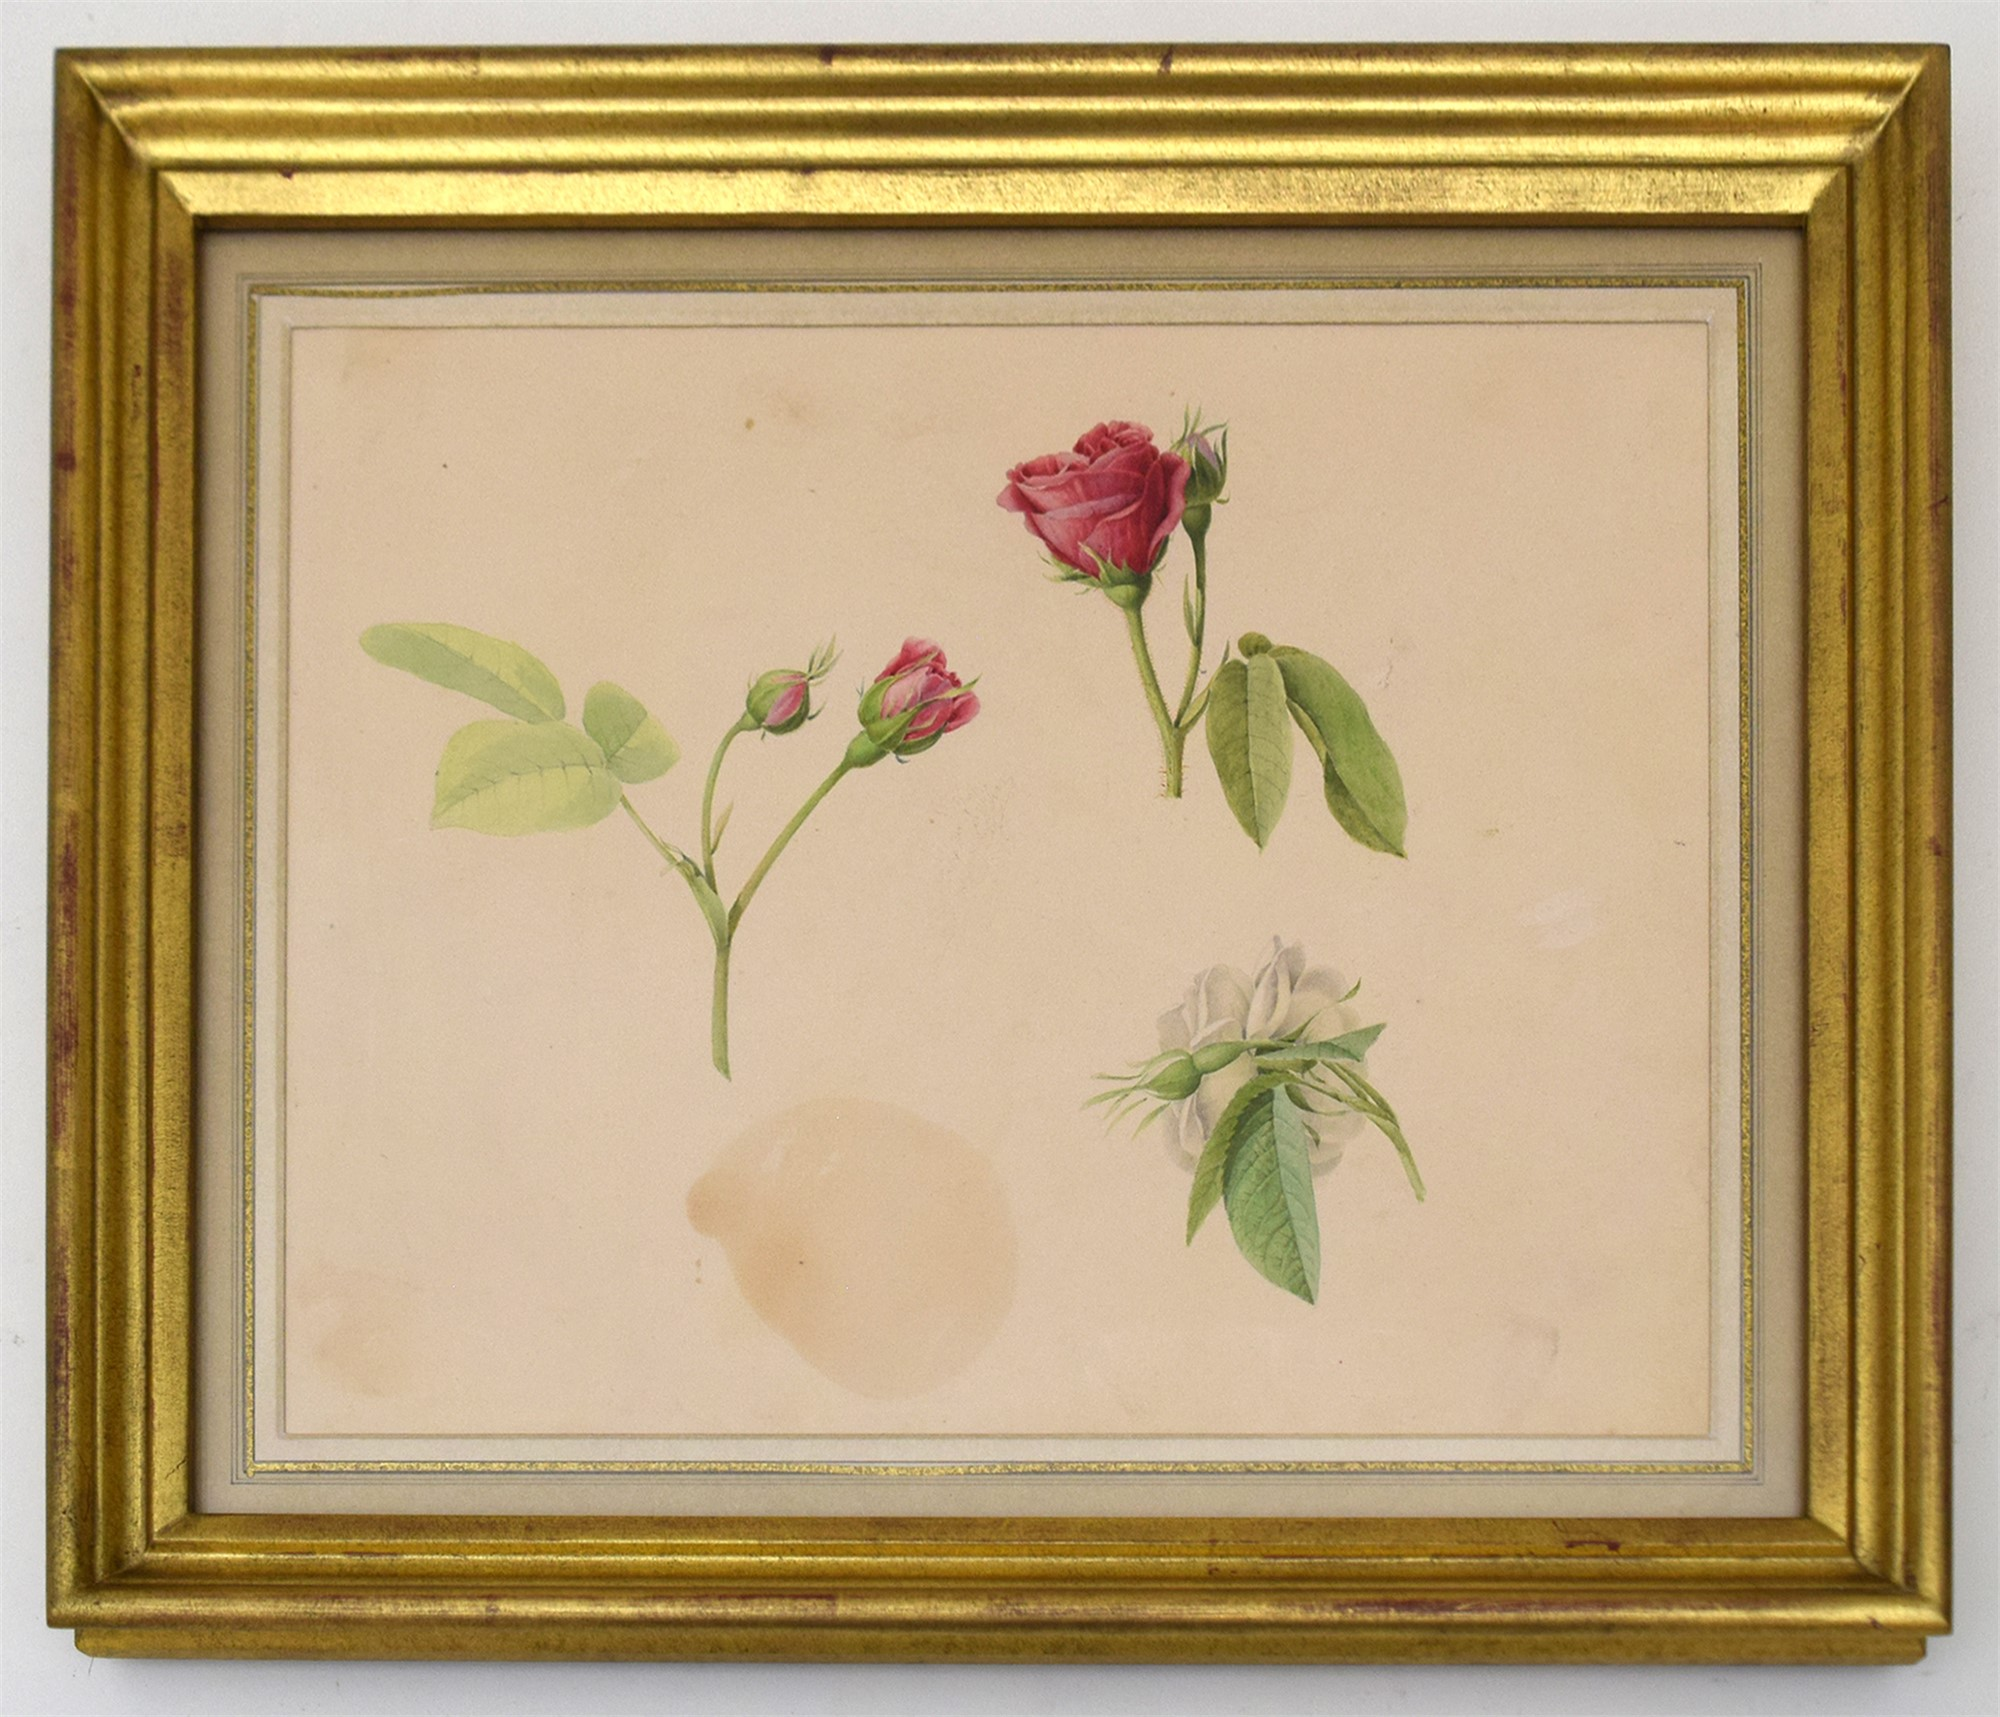 BOTANICAL STUDY by A. Fourcault